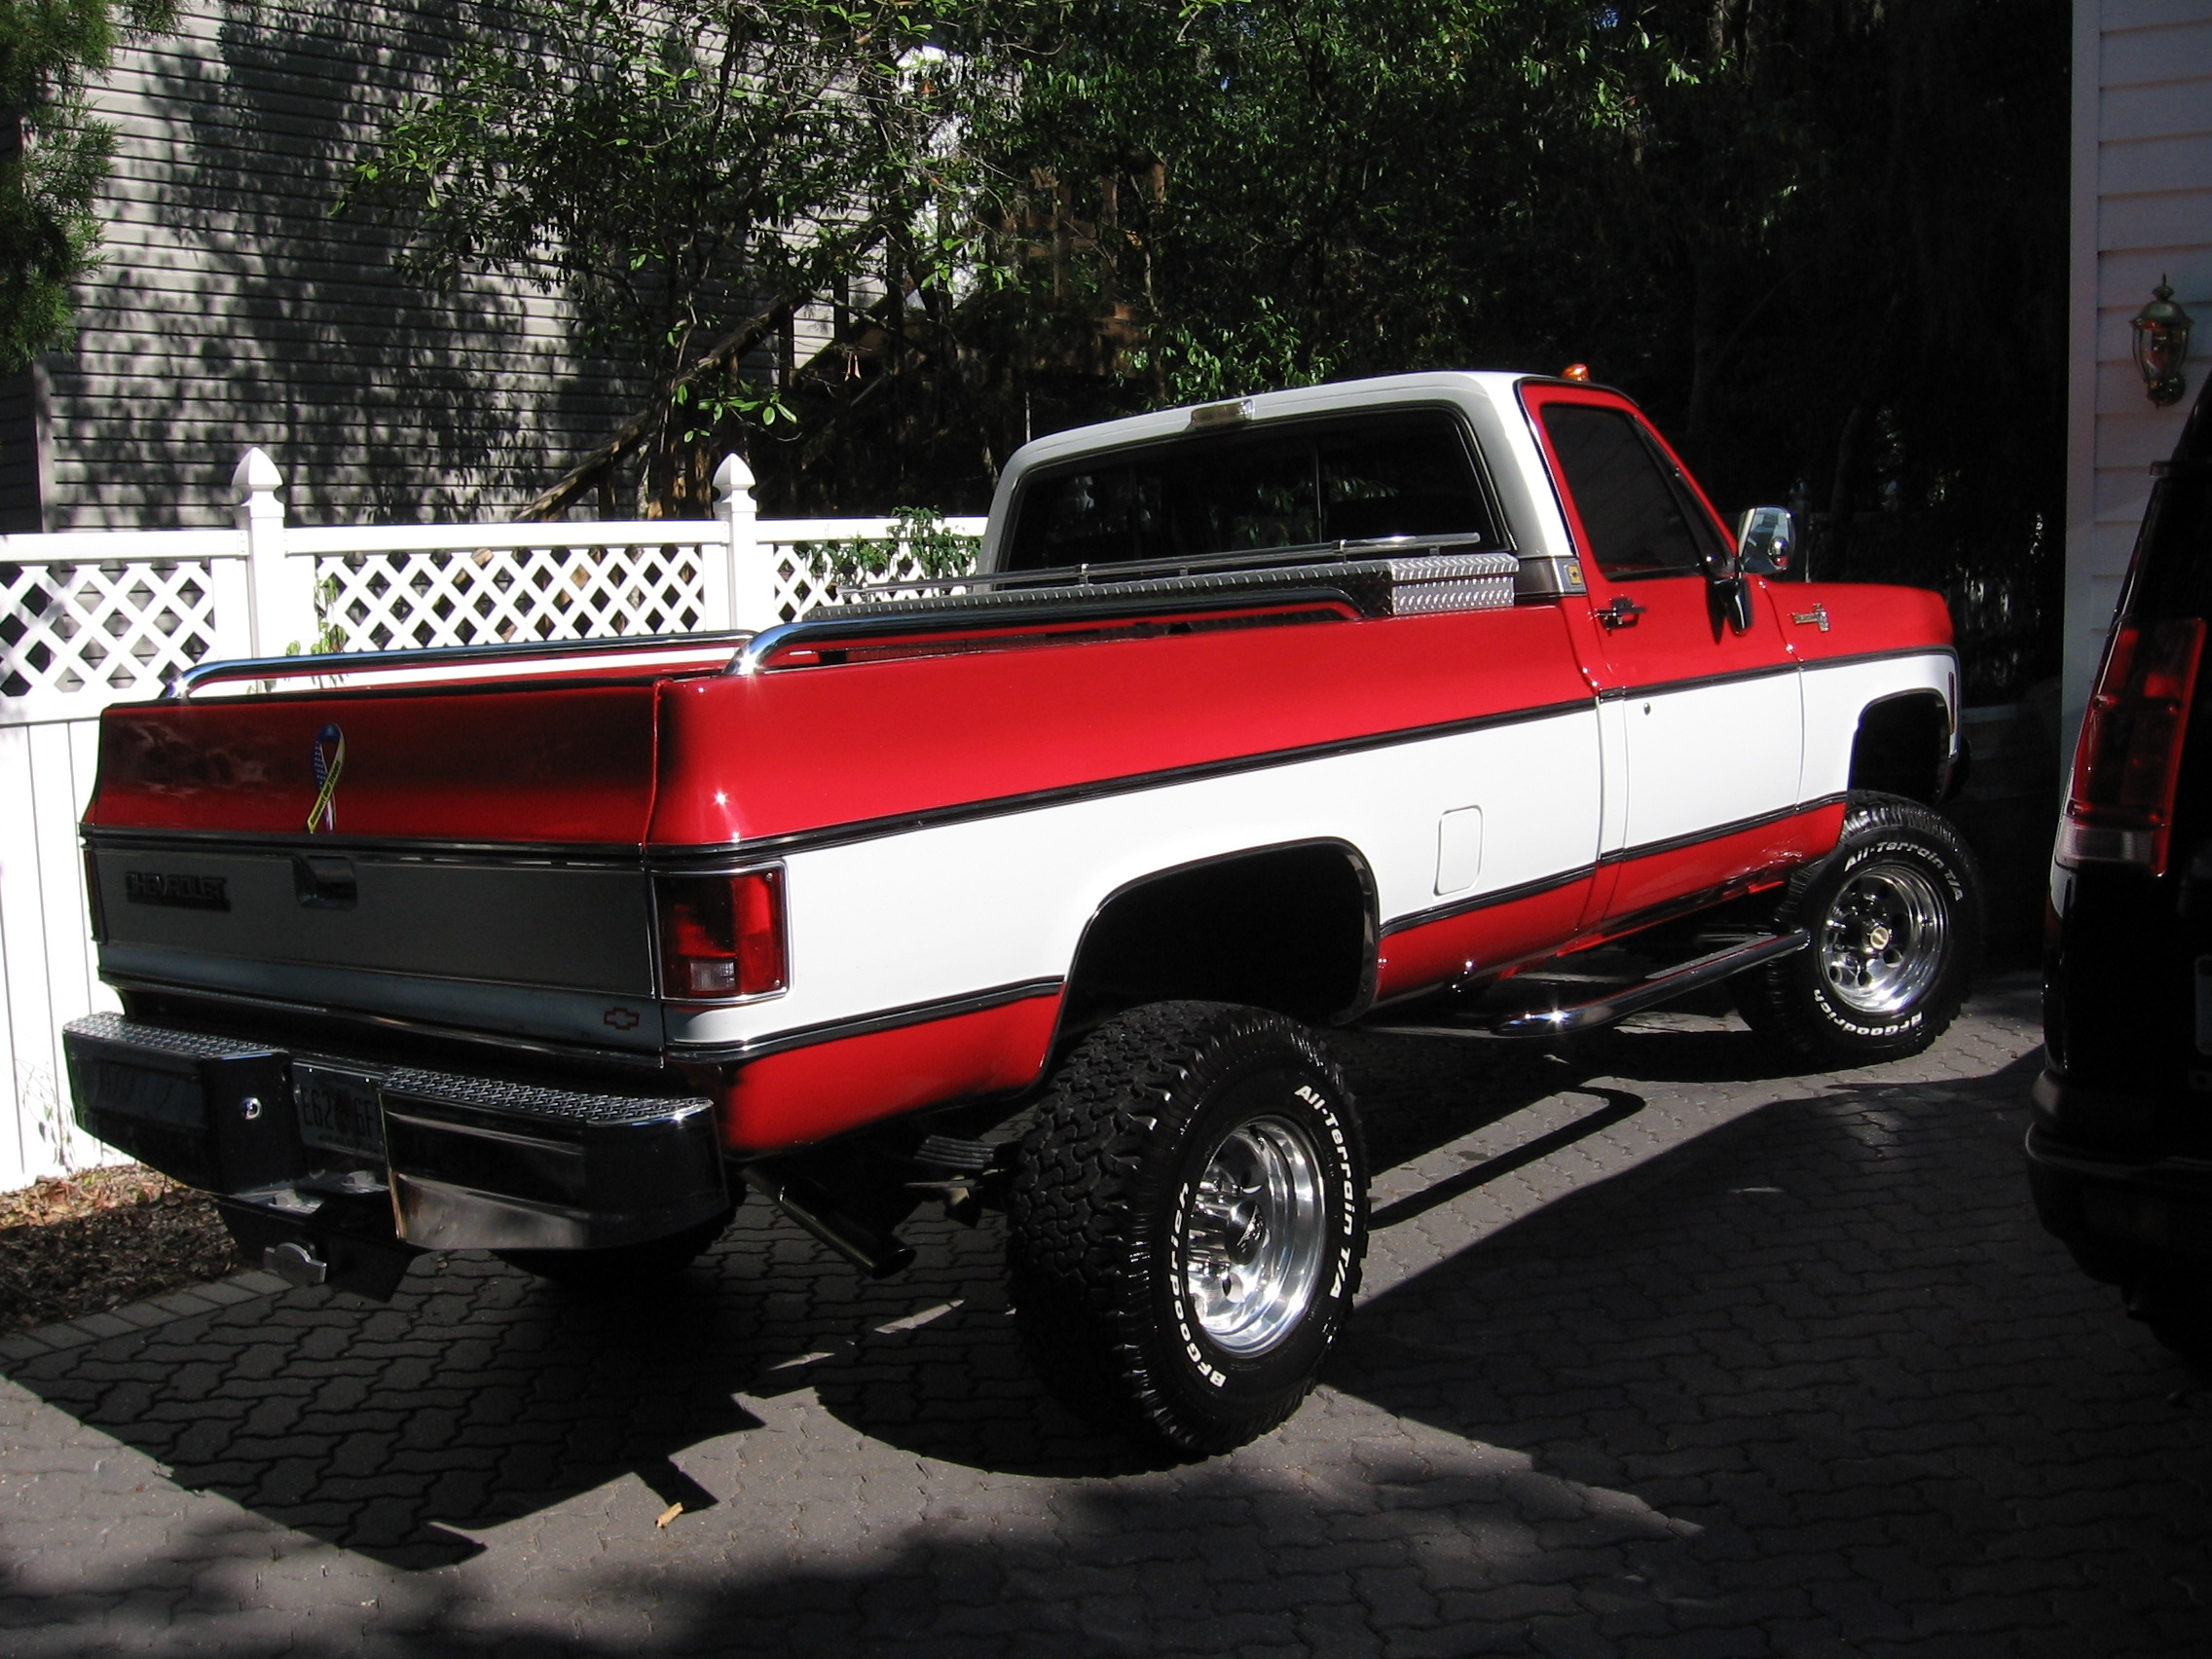 Eccwkingofbling 1980 Chevrolet Silverado 2500 Hd Regular